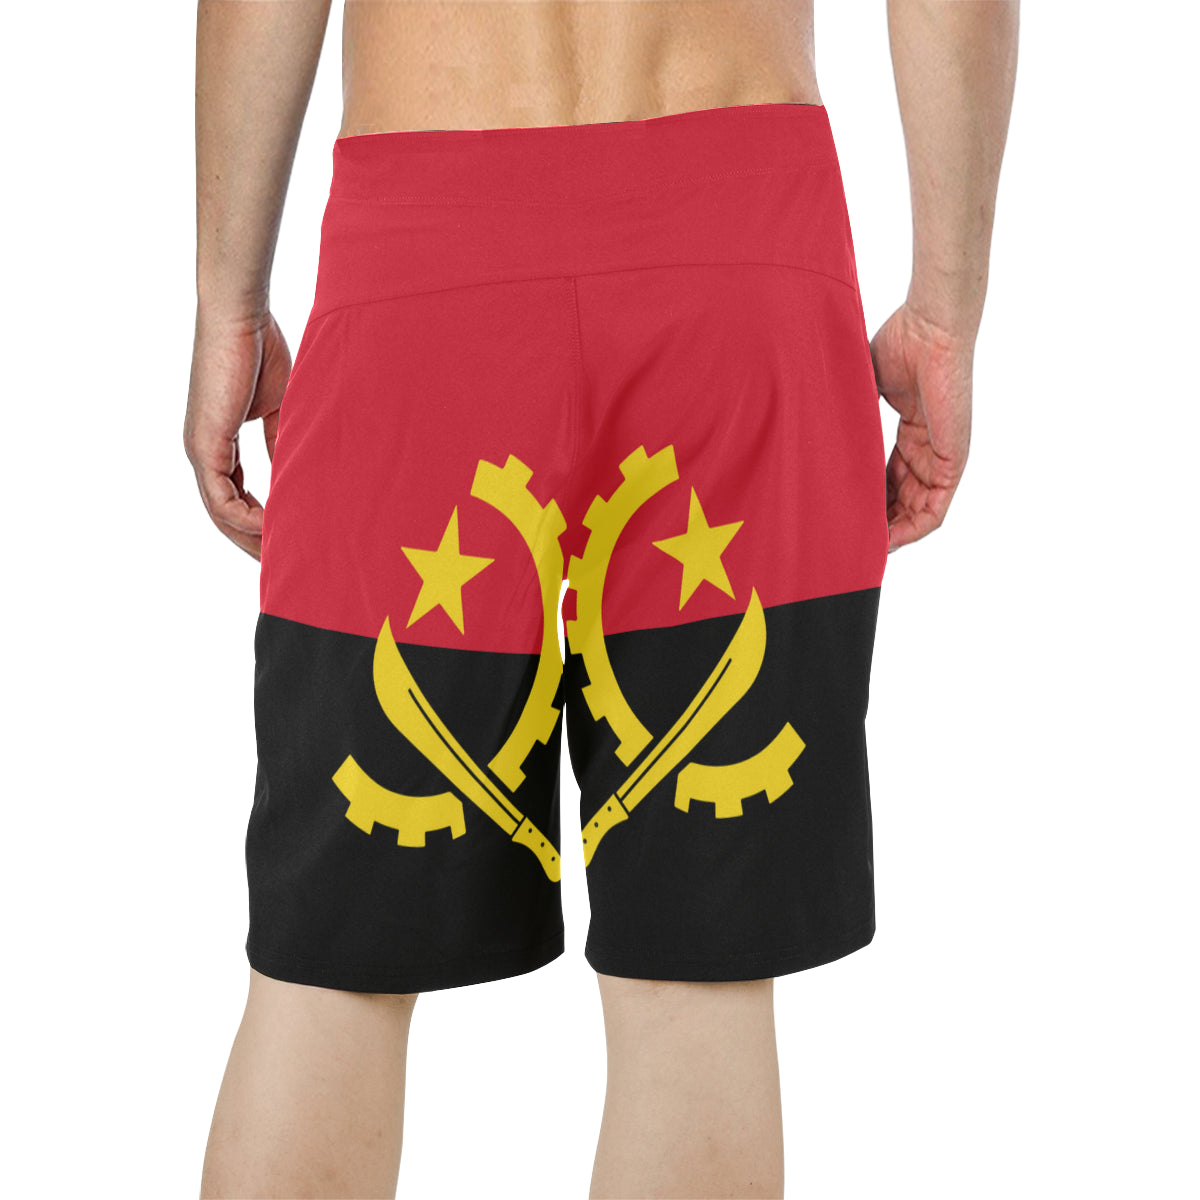 Angola Born Men's  Board Shorts